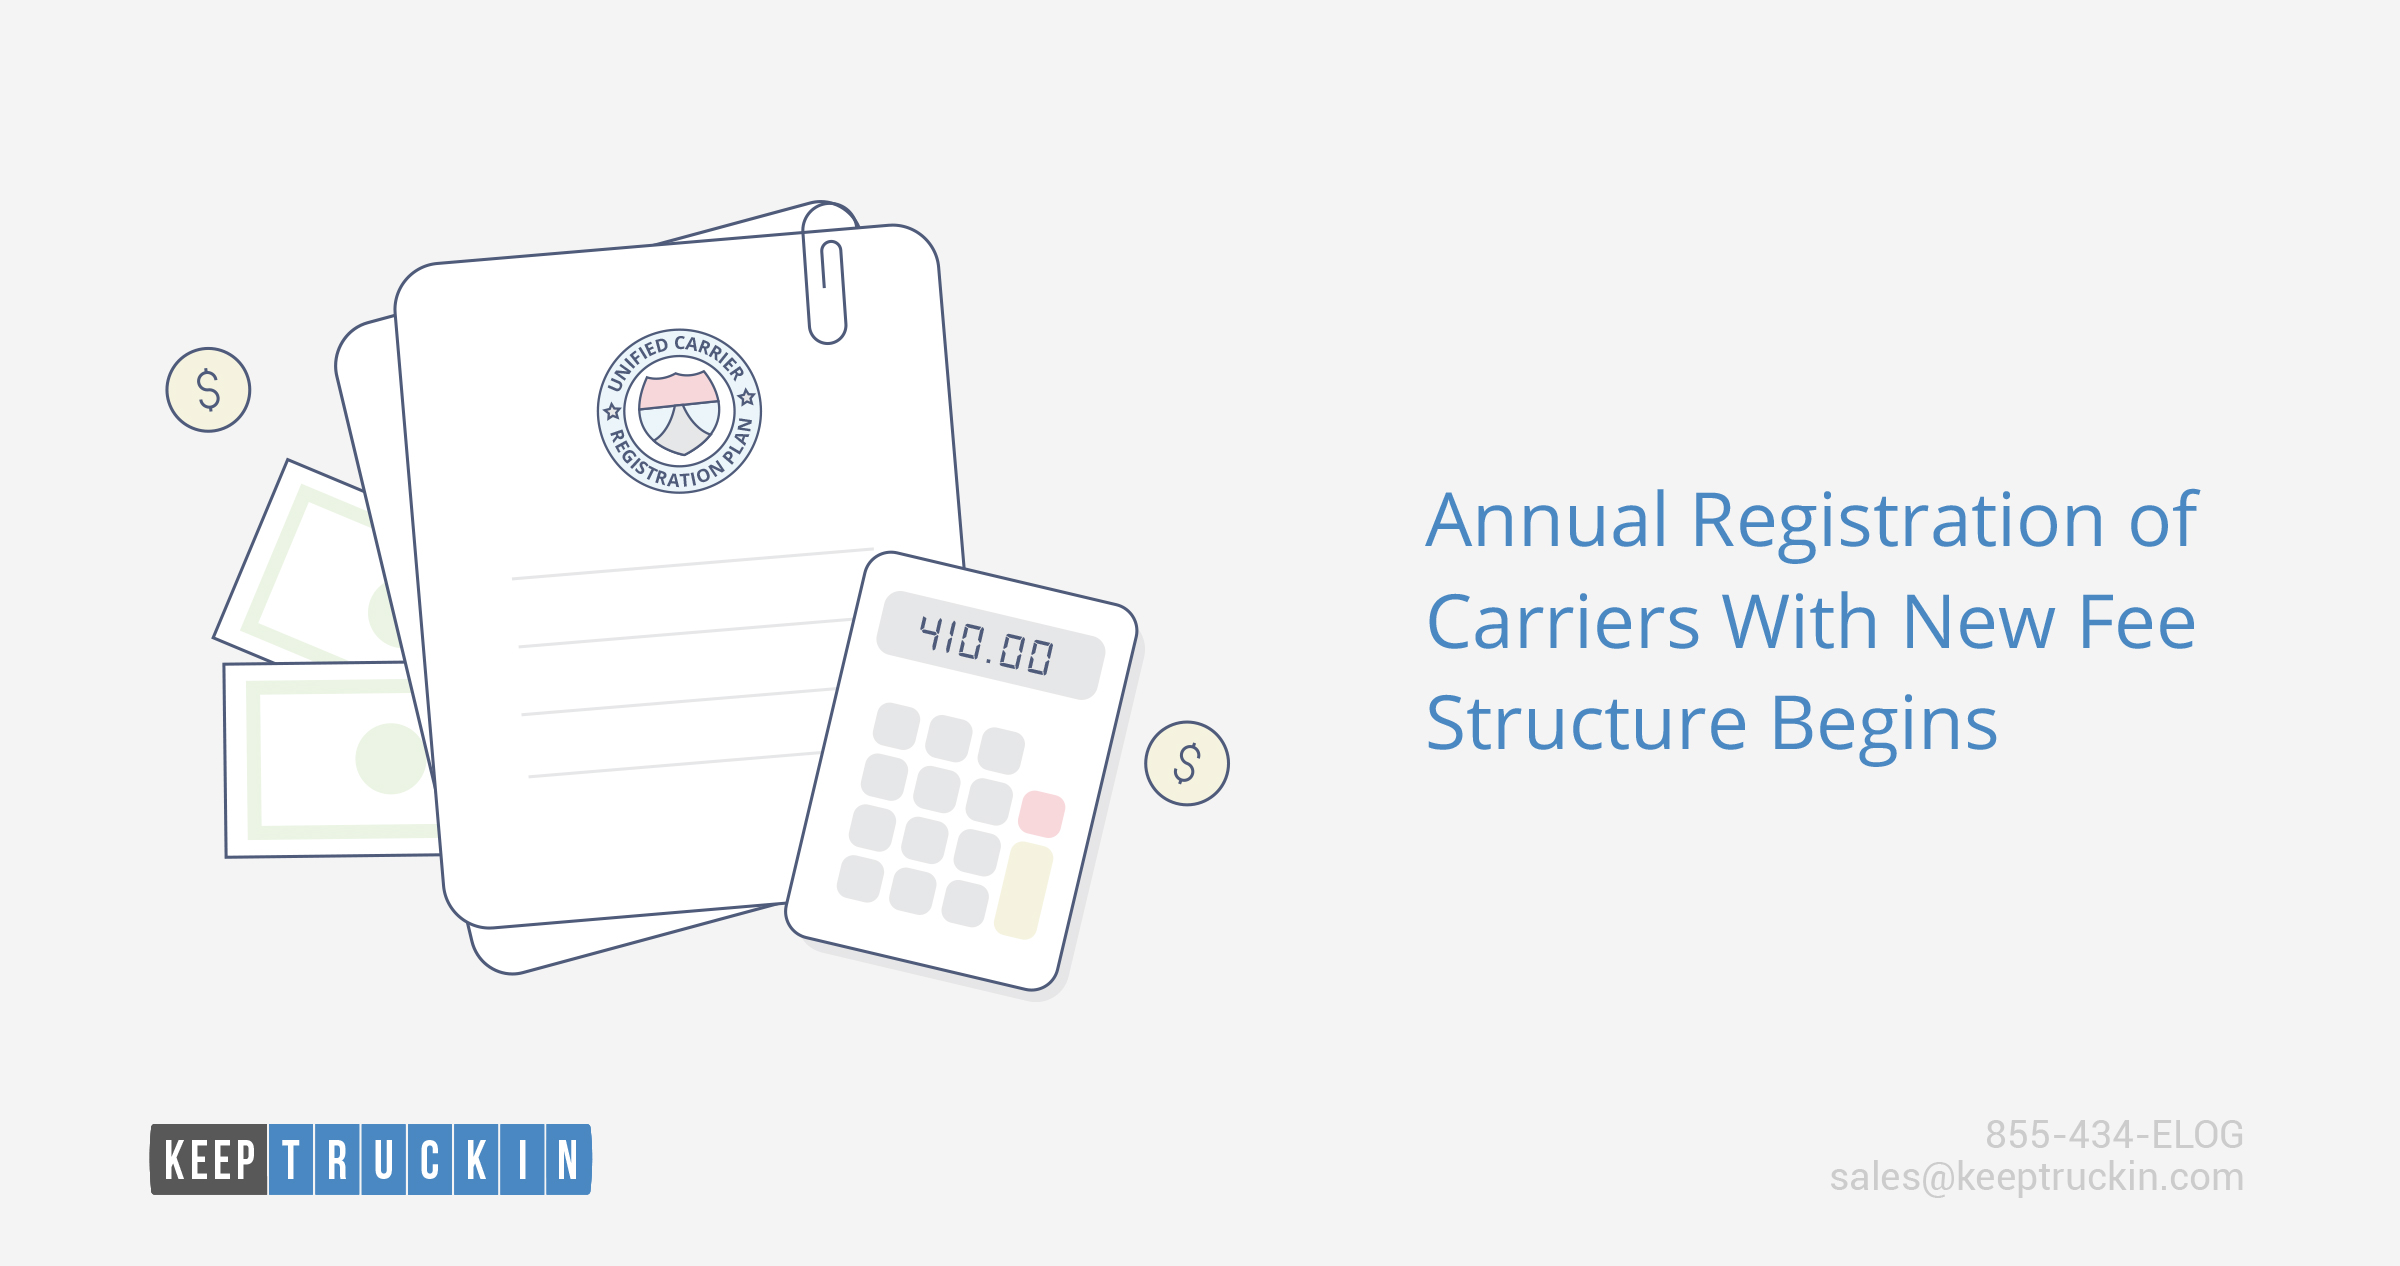 Annual registration of carriers with new fee structure begins